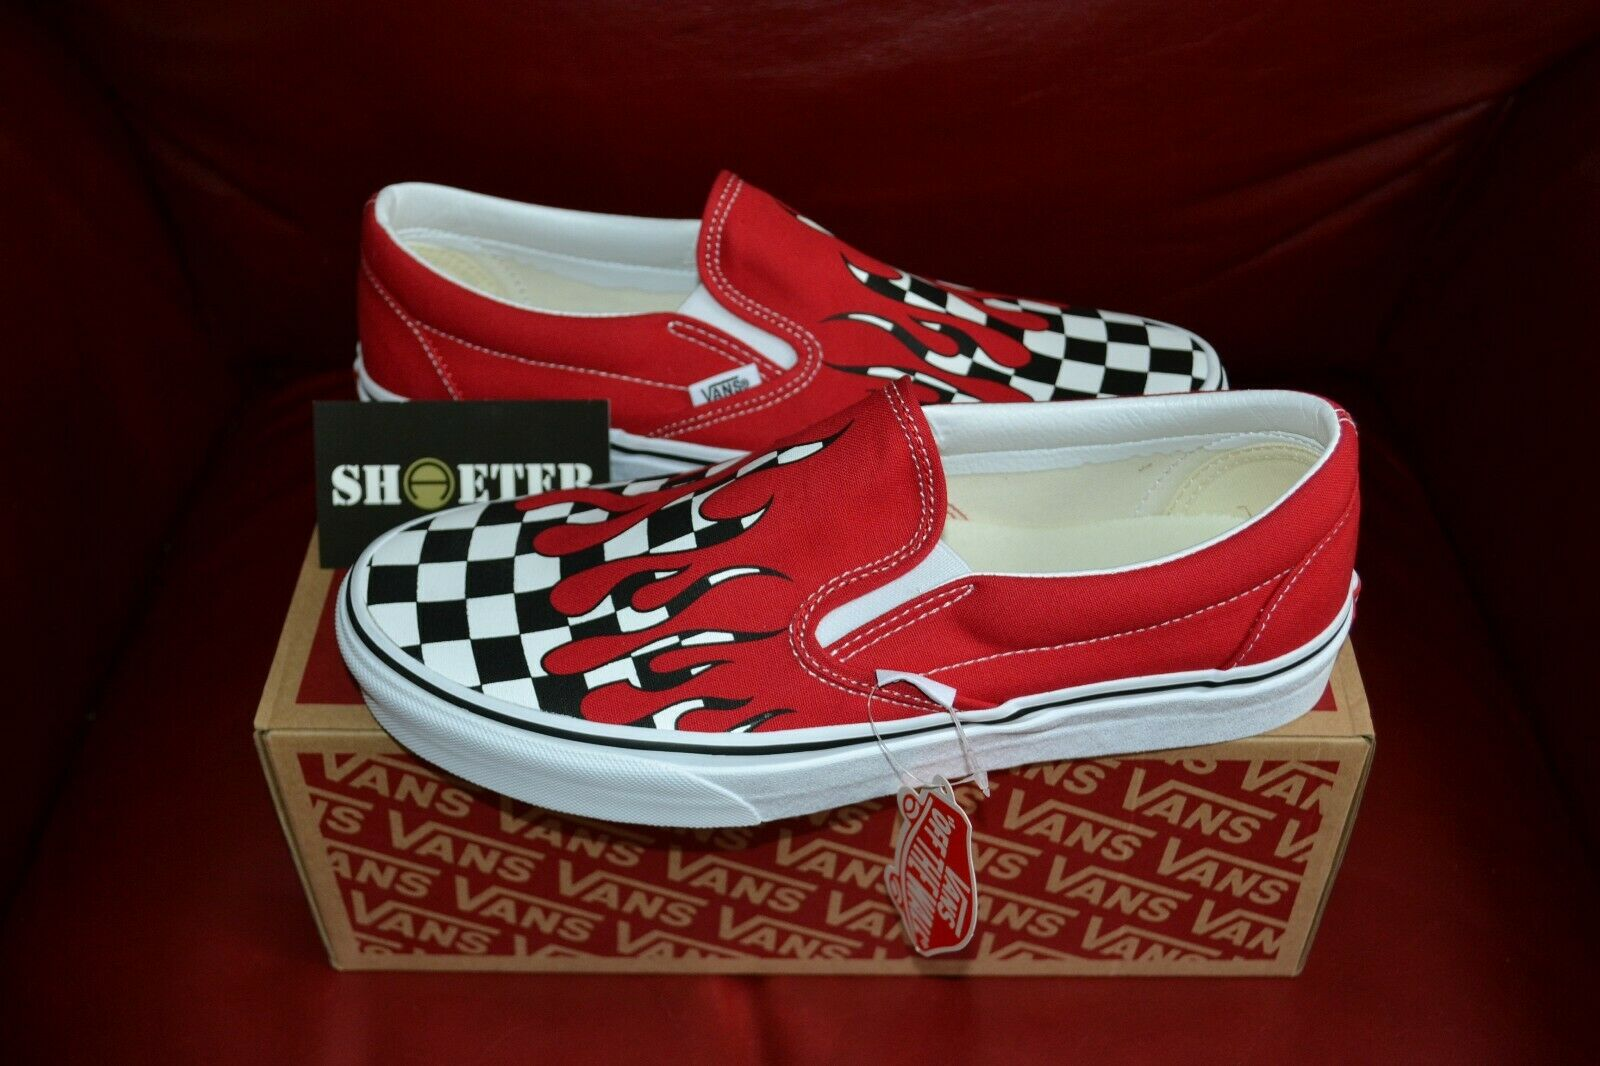 New Vans Checker Flame Slip-On Slip-On Slip-On Racing rosso bianca Uomo Donna  Dimensione 3.5 -13 9b0bd0